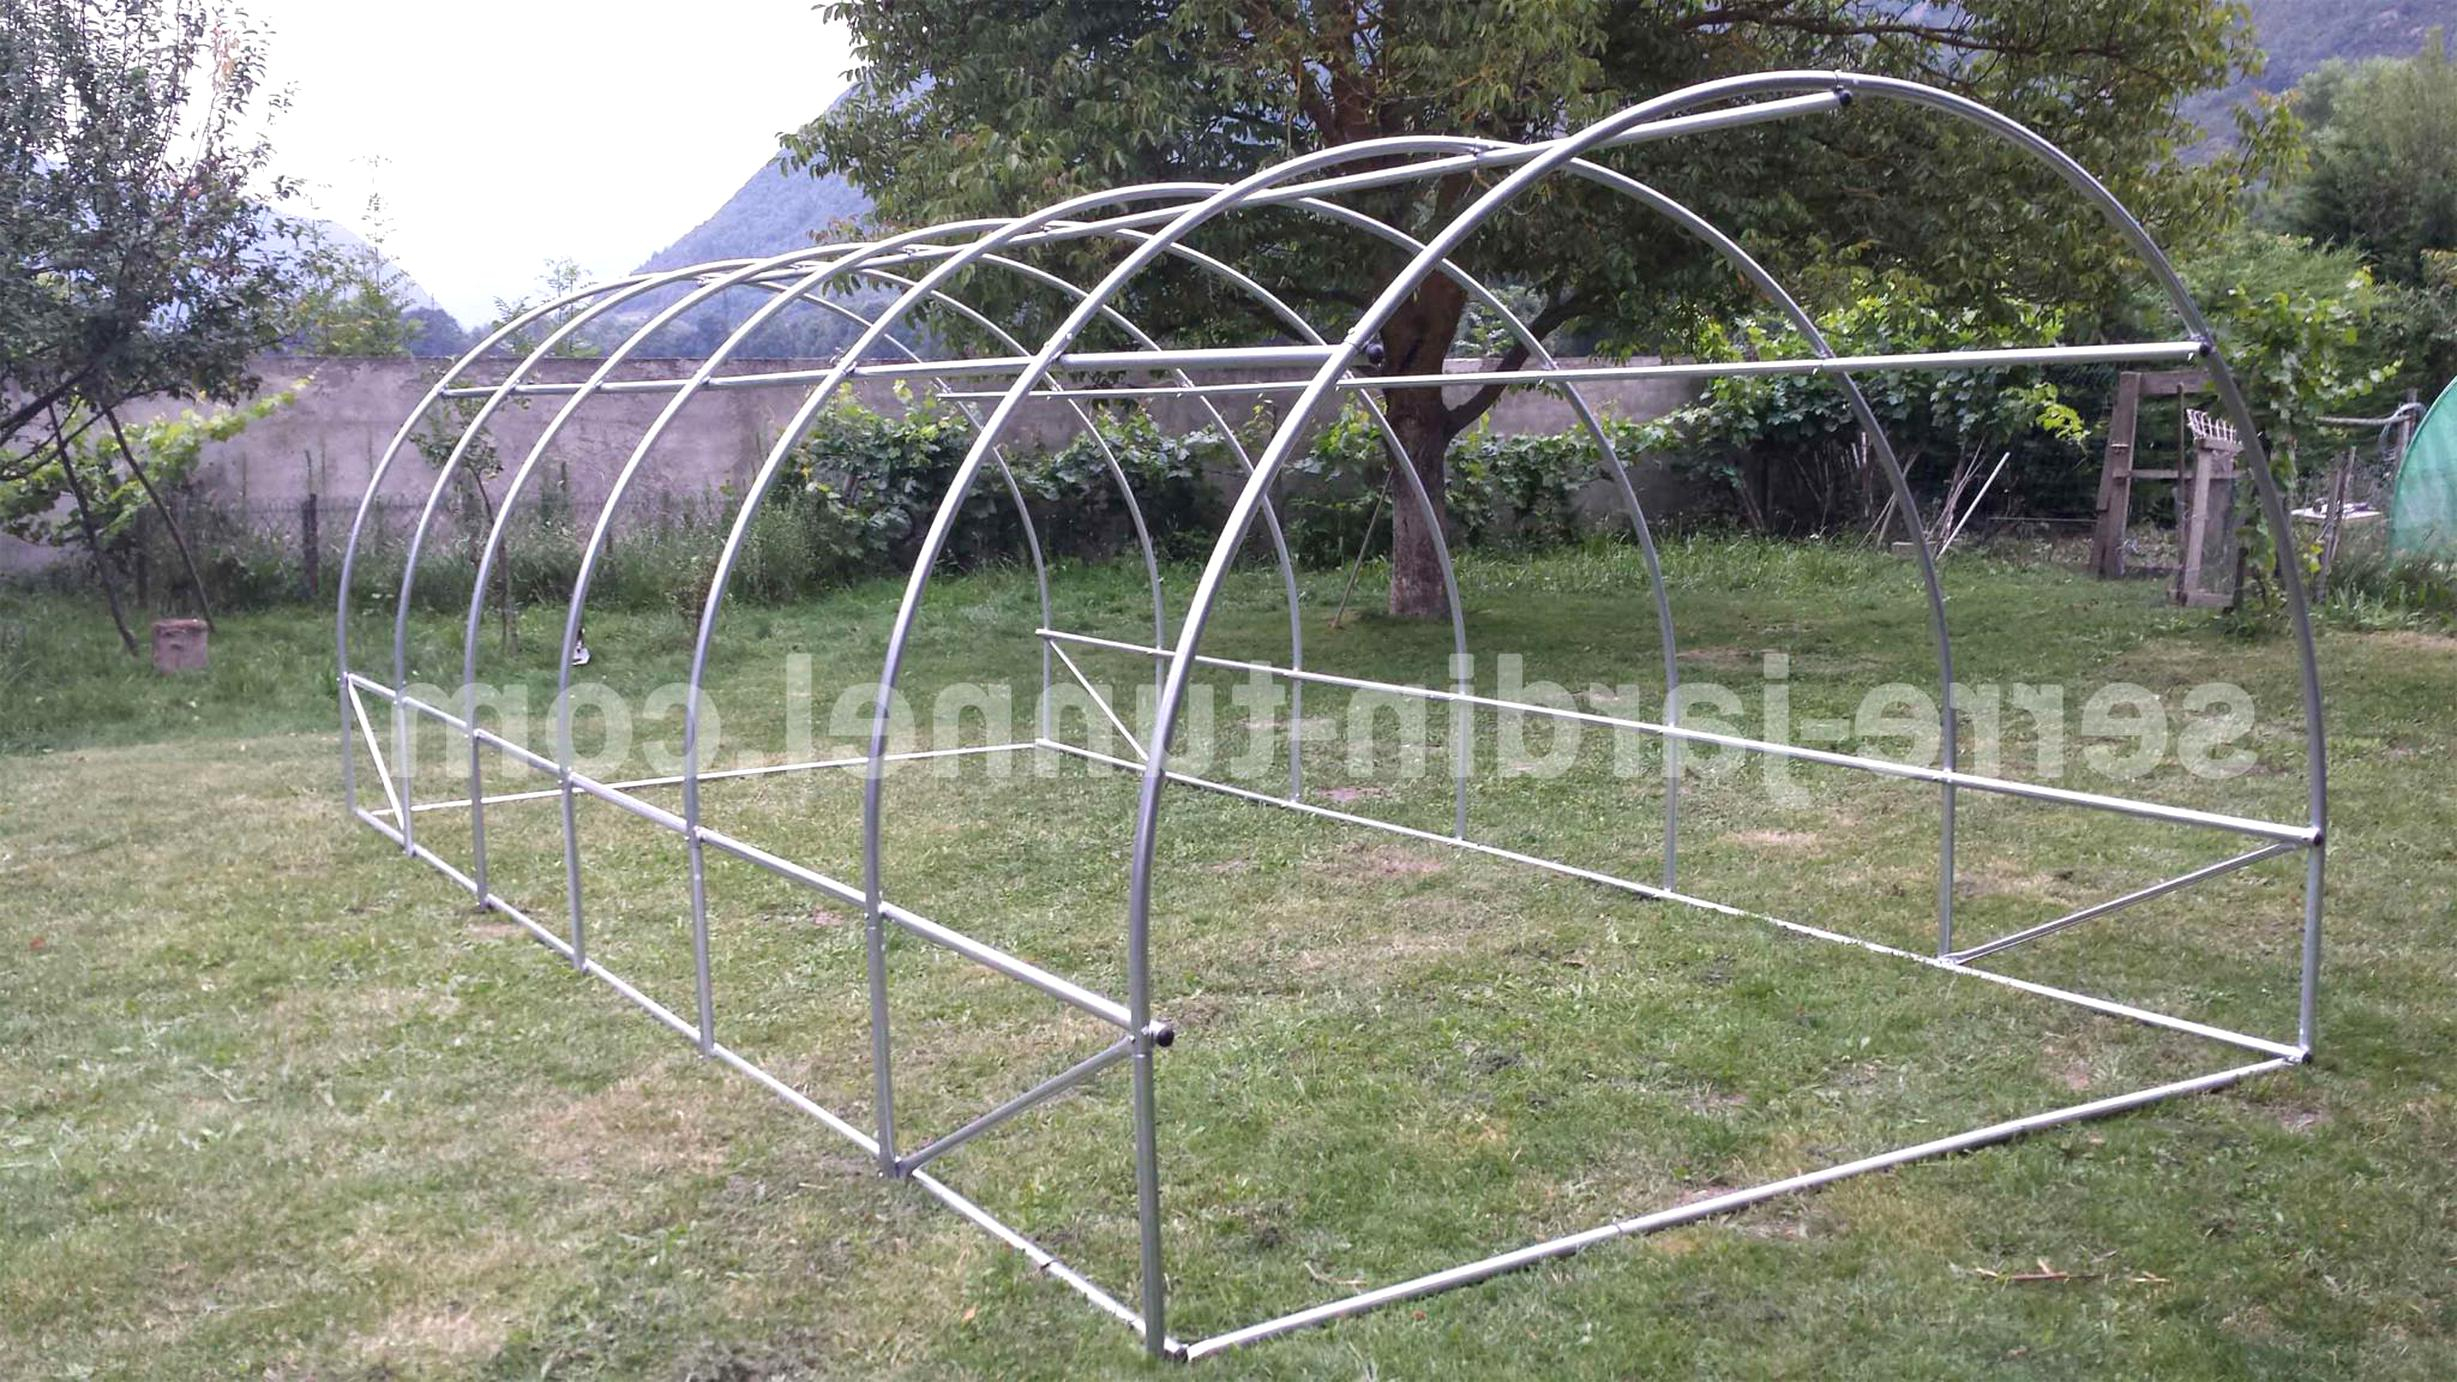 Serre Tunnel A Vendre Serre Tunnel Armature D Occasion ... encequiconcerne Serre Tunnel Occasion